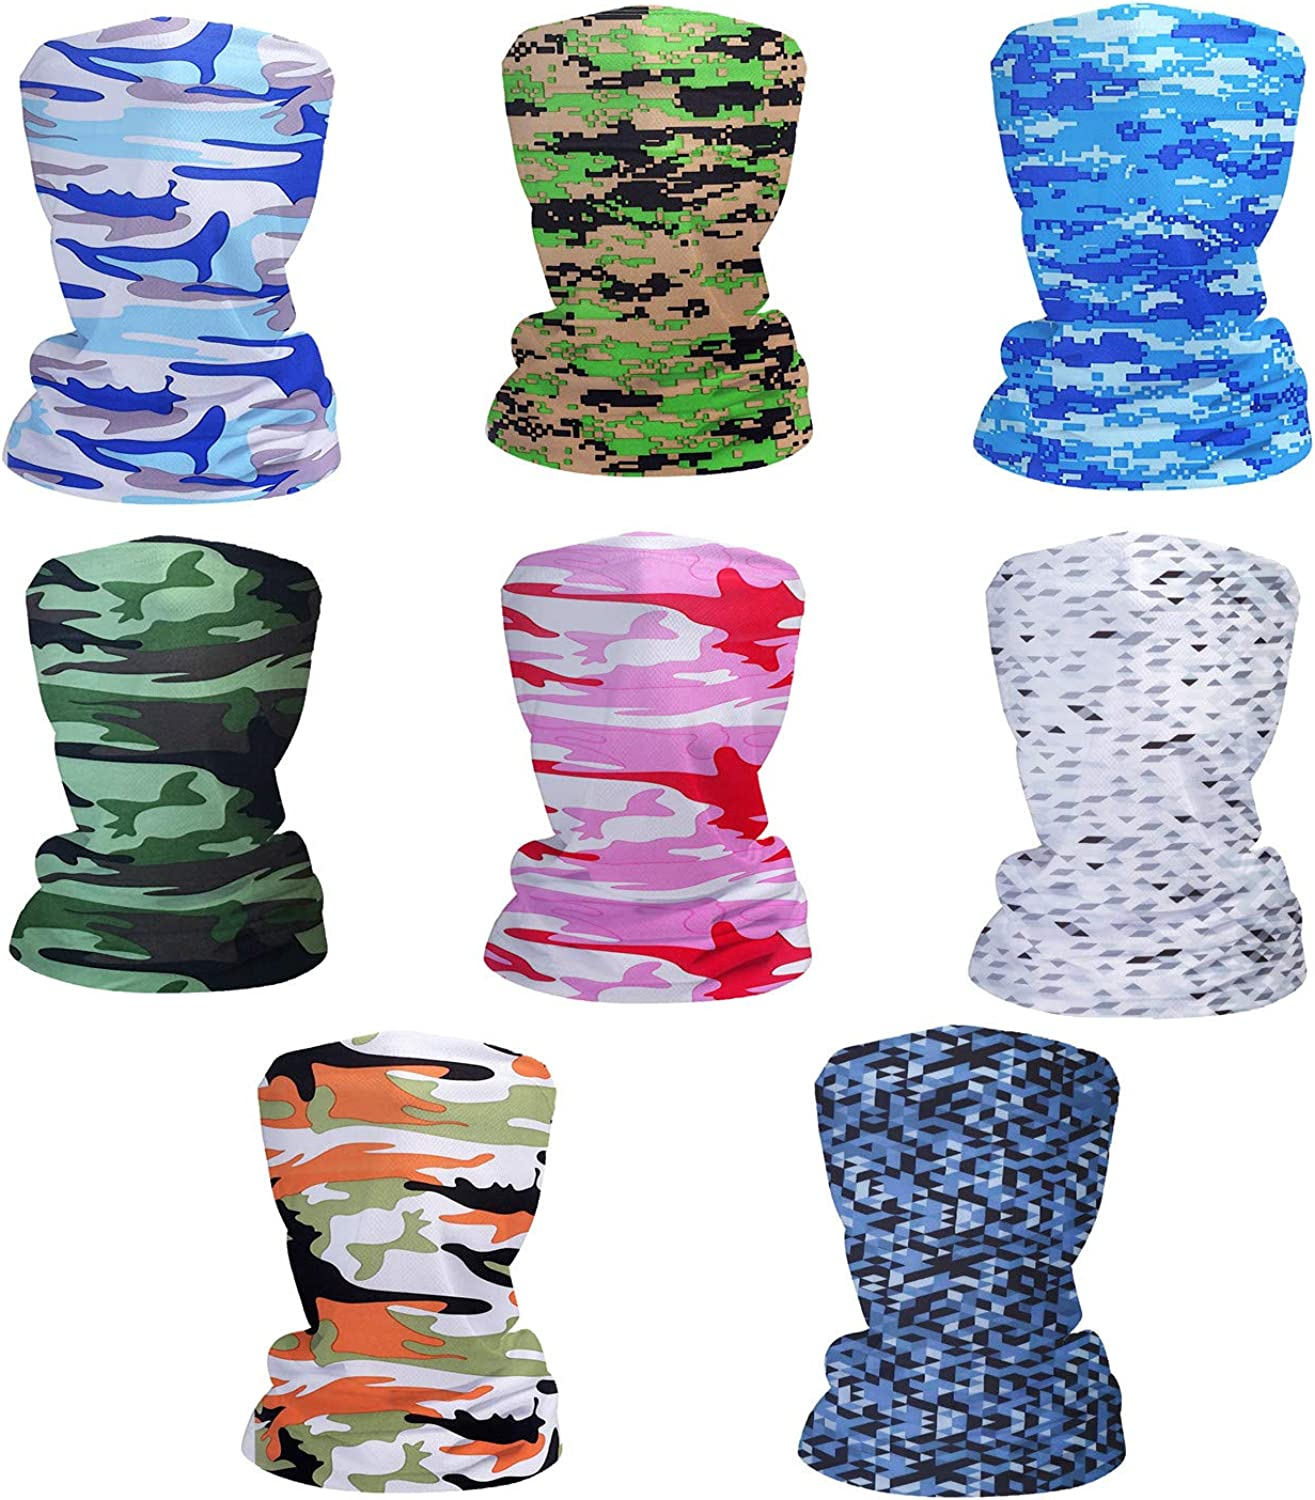 Fashion Face Dust Mask (8 PCS) Bandanas Sports & Casual Headwear Seamless Neck Gaiter, Headwrap, Balaclava, Helmet Liner